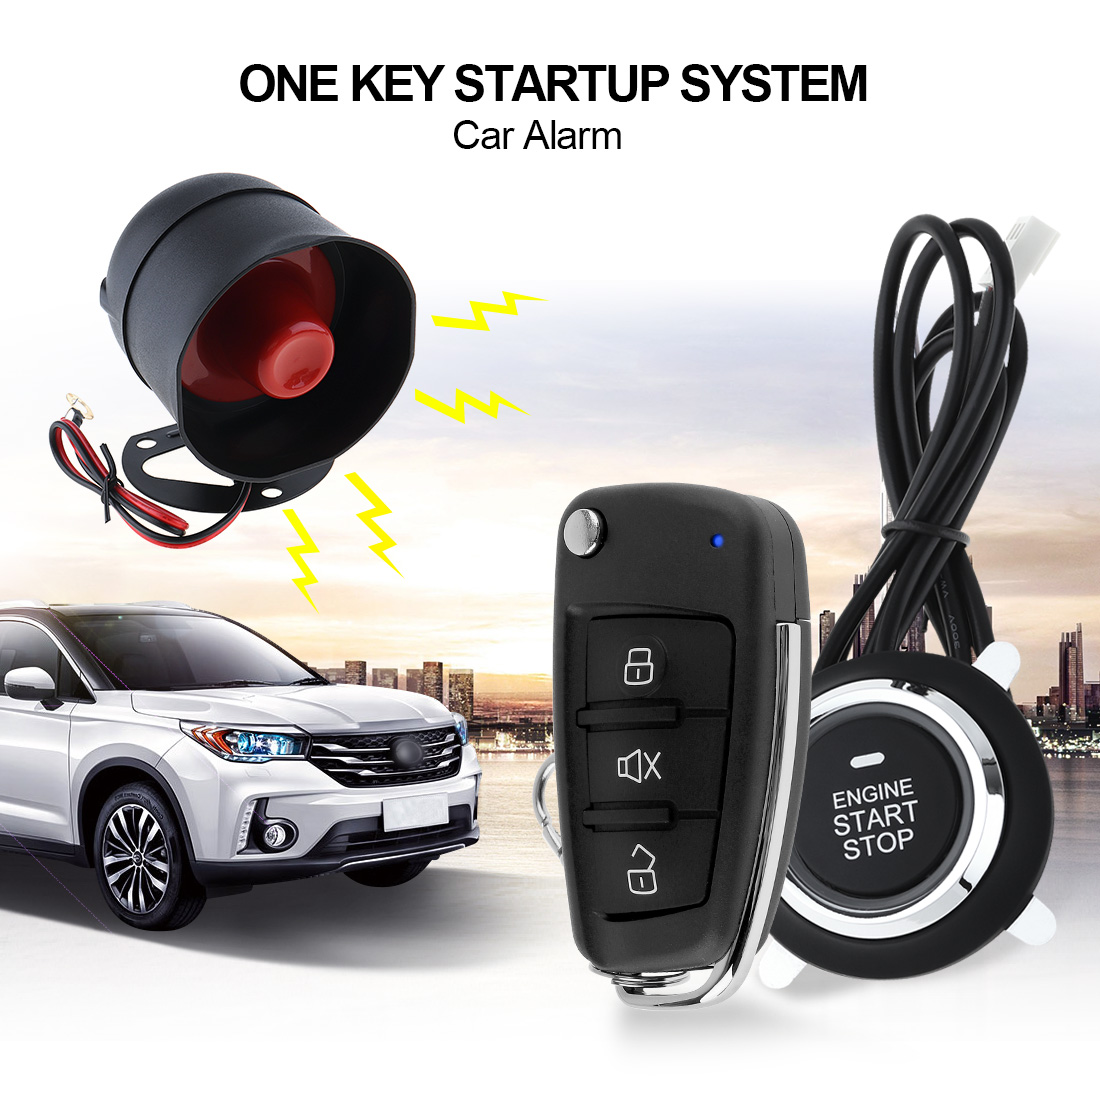 Universal Car Alarm Security System Remote Start Stop Button Engine System Vehicle Keyless Entry Door Lock Auto Central Locking easyguard pke car alarm system remote engine start stop shock sensor push button start stop window rise up automatically